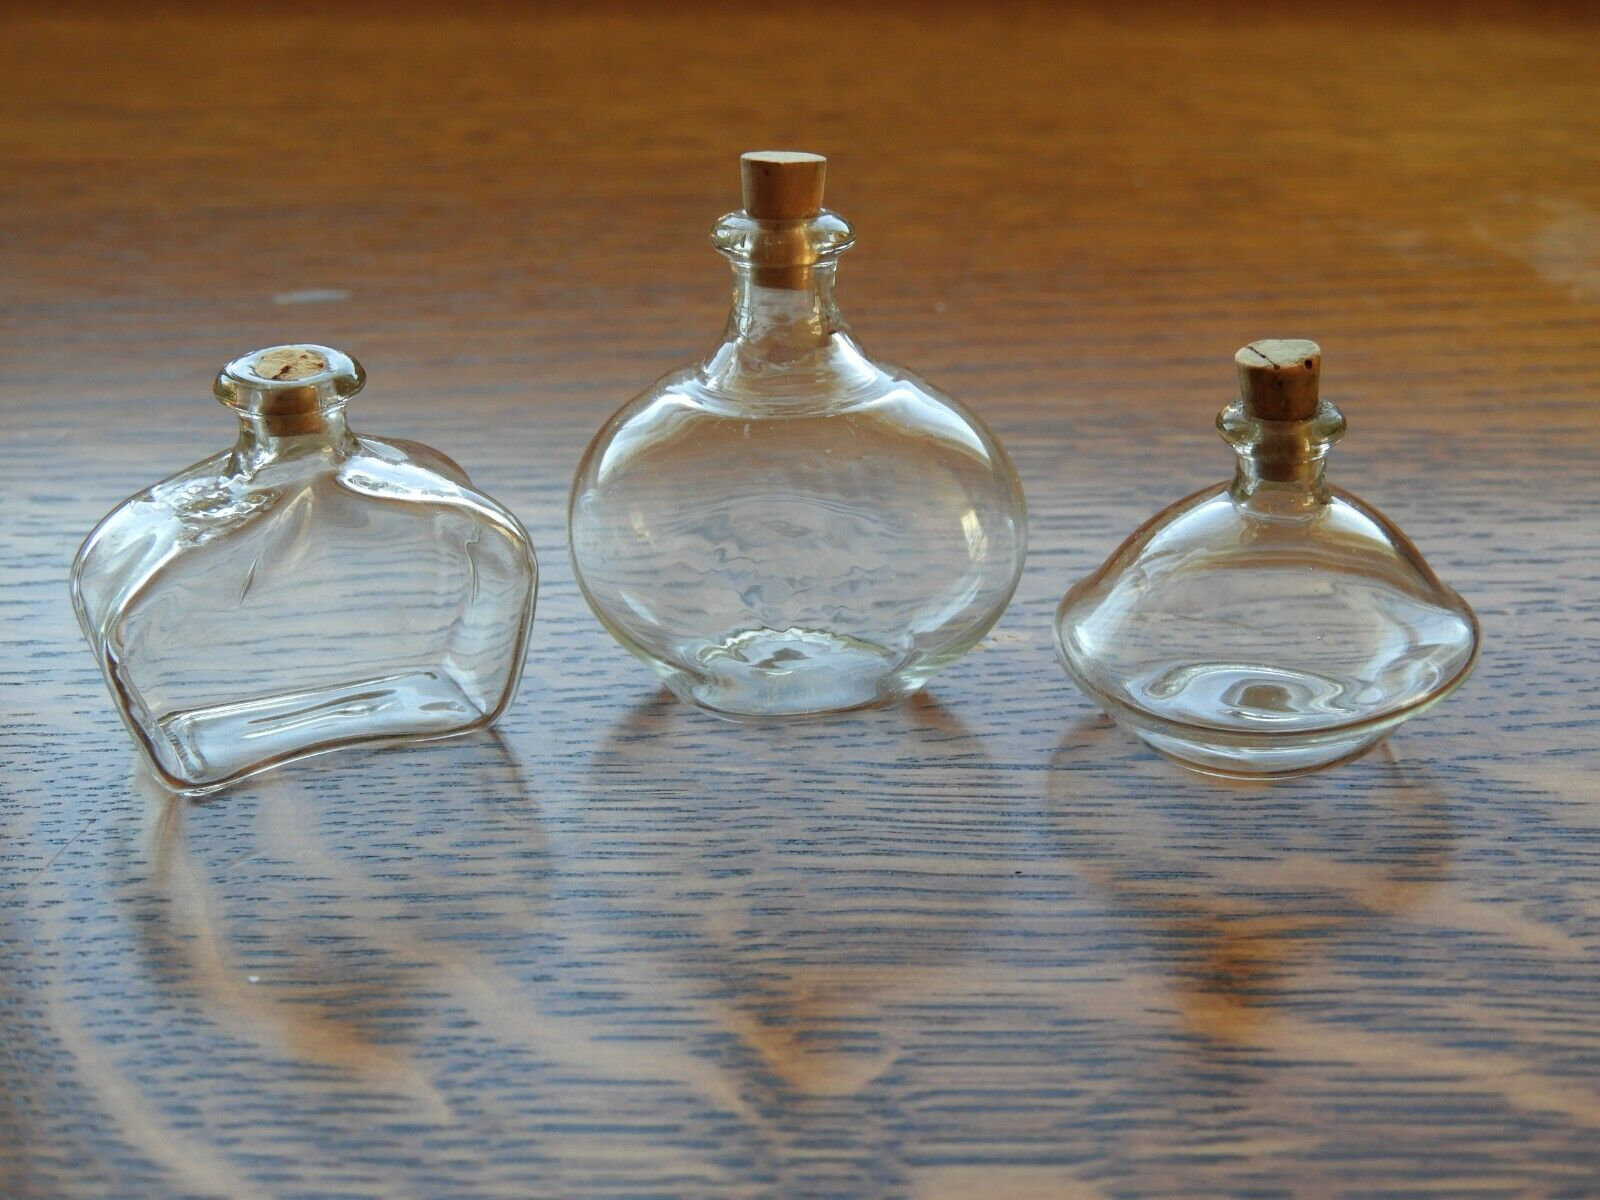 Vintage Lot Of 3 Hand Blown Glass Clear Perfume Bottle Cork Stoppers 2 Of 2 - $25.00